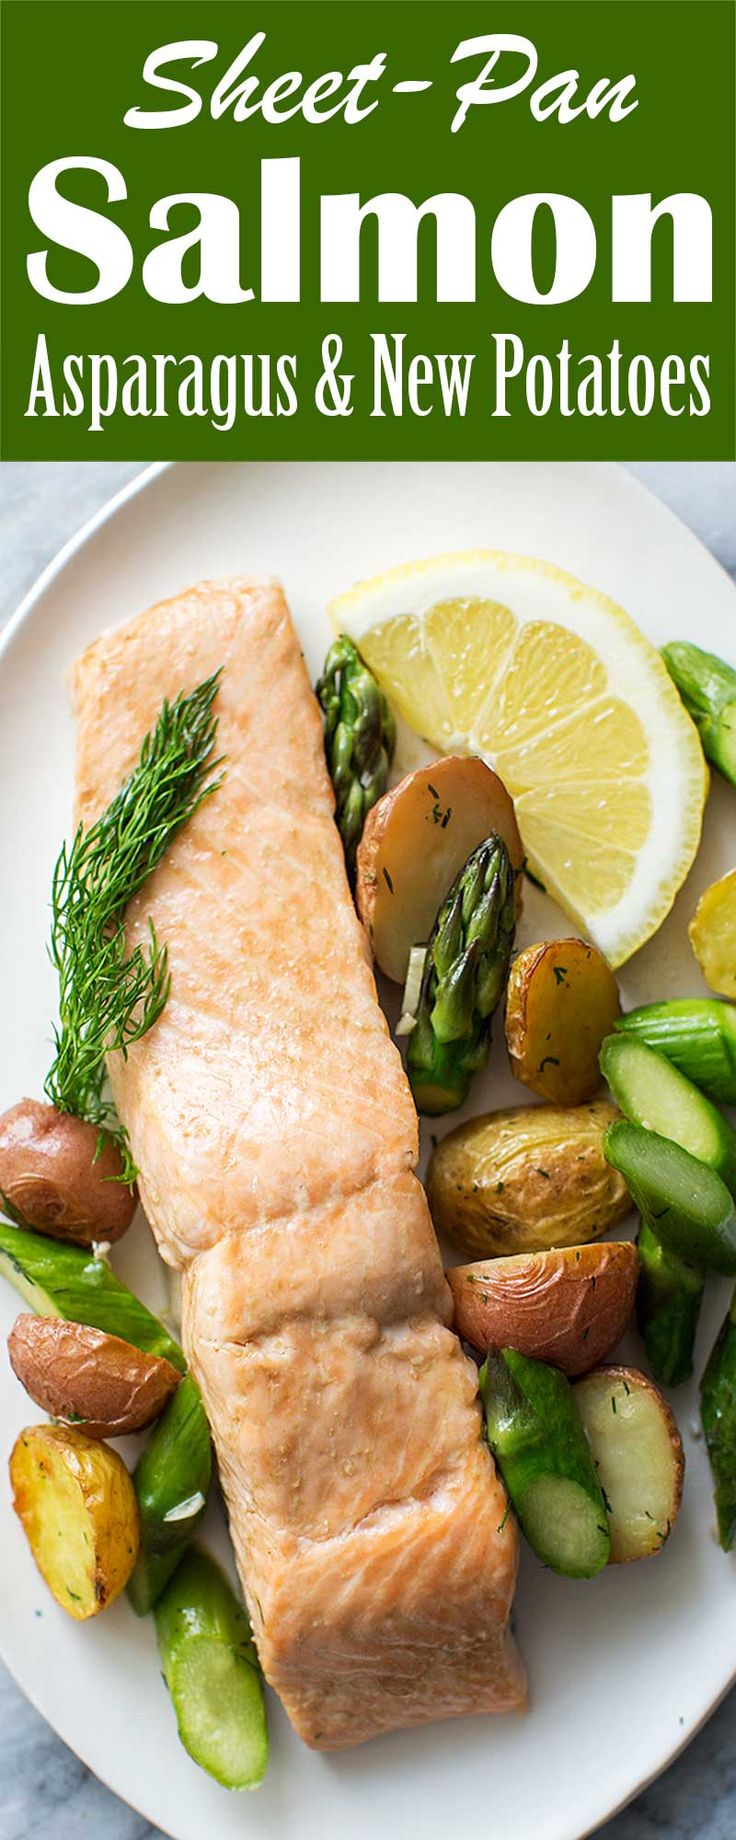 Sheet Pan Salmon, Asparagus & New Potatoes, quick and EASY, make everything in one pan, easy clean-up, and the taste is delicious! Perfect for a midweek dinner.